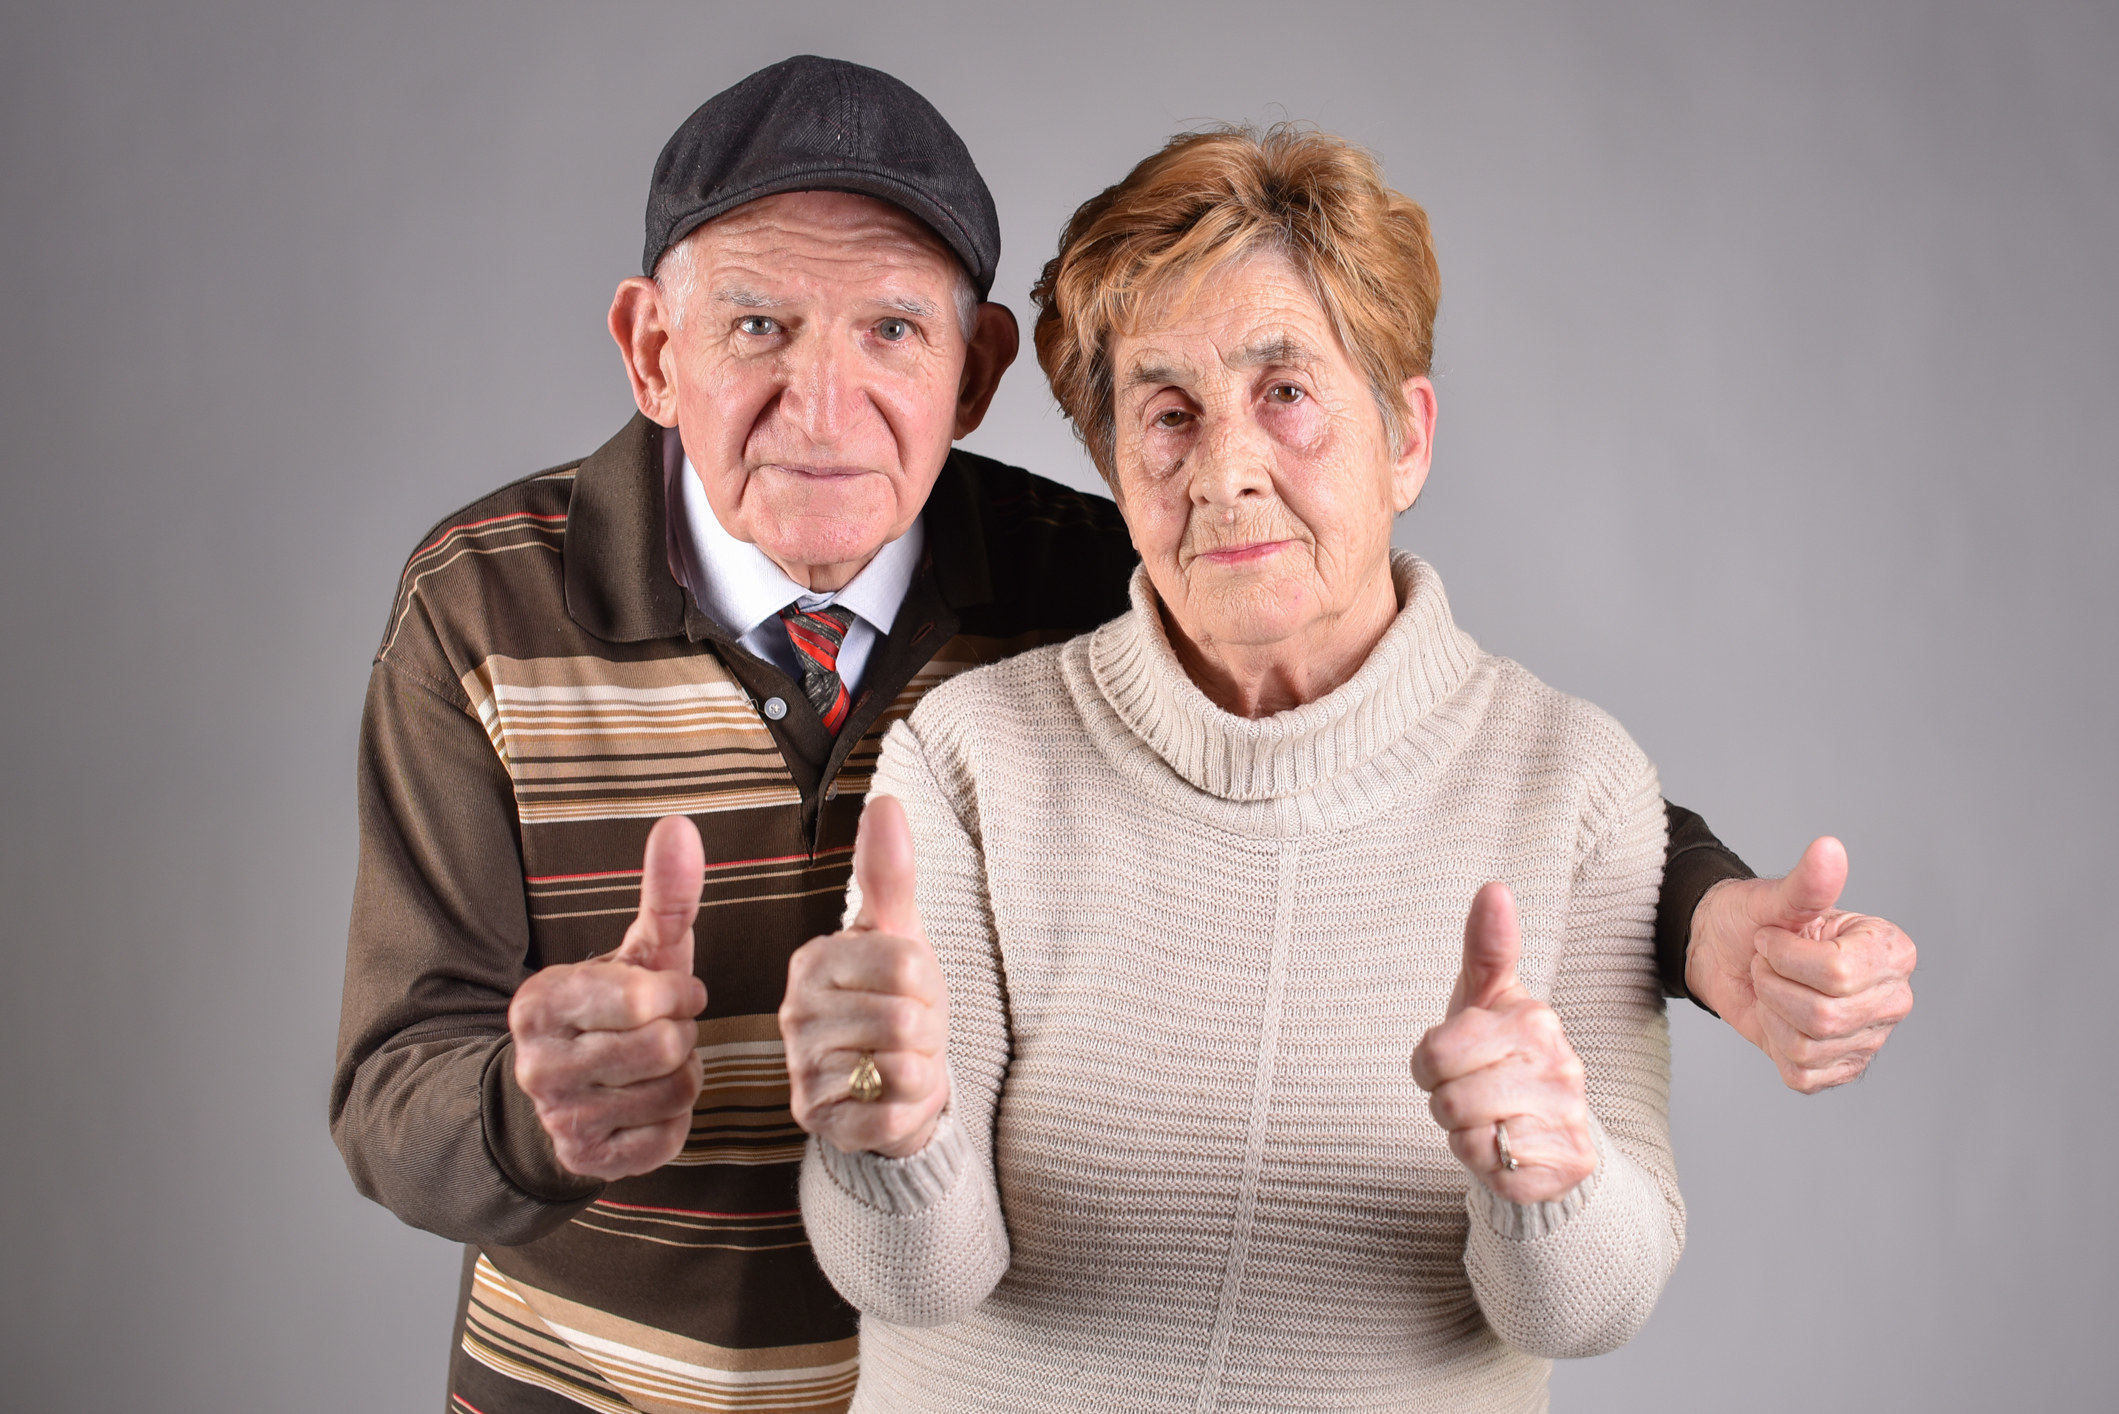 two old people giving thumbs up